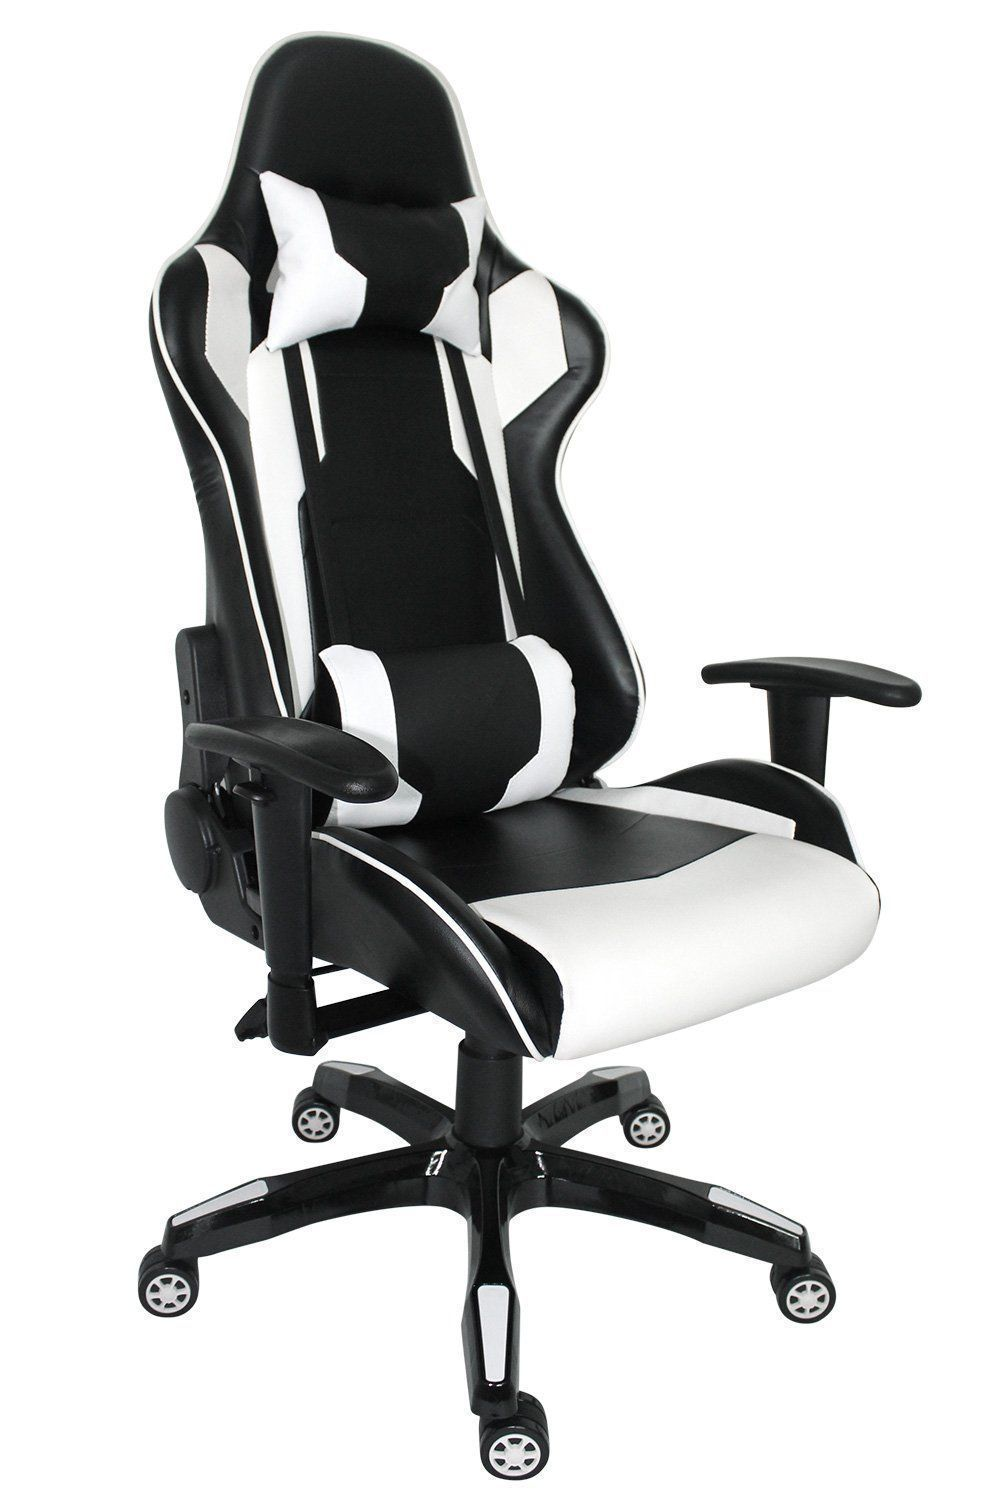 proht nas racing style chair 05183a 180 degree high back rh pinterest com